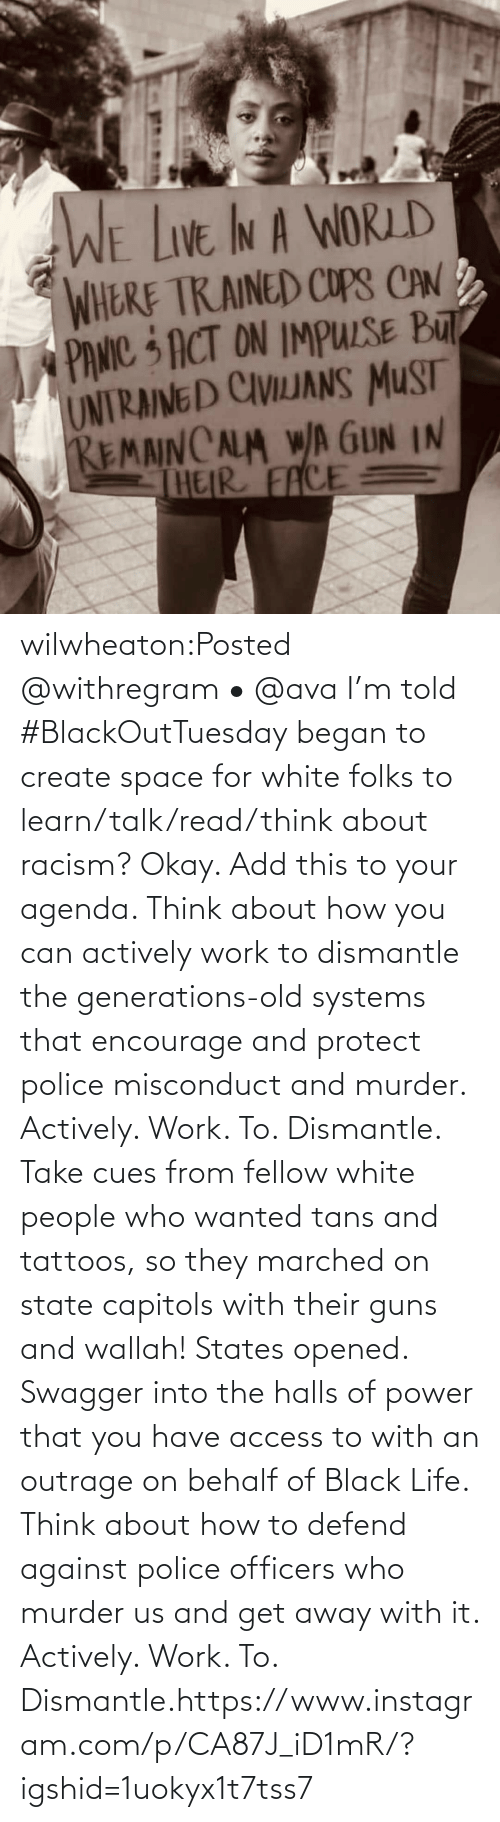 state: wilwheaton:Posted @withregram • @ava I'm told #BlackOutTuesday began to create space for white folks to learn/talk/read/think about racism? Okay. Add this to your agenda. Think about how you can actively work to dismantle the generations-old systems that encourage and protect police misconduct and murder. Actively. Work. To. Dismantle. Take cues from fellow white people who wanted tans and tattoos, so they marched on state capitols with their guns and wallah! States opened. Swagger into the halls of power that you have access to with an outrage on behalf of Black Life. Think about how to defend against police officers who murder us and get away with it. Actively. Work. To. Dismantle.https://www.instagram.com/p/CA87J_iD1mR/?igshid=1uokyx1t7tss7